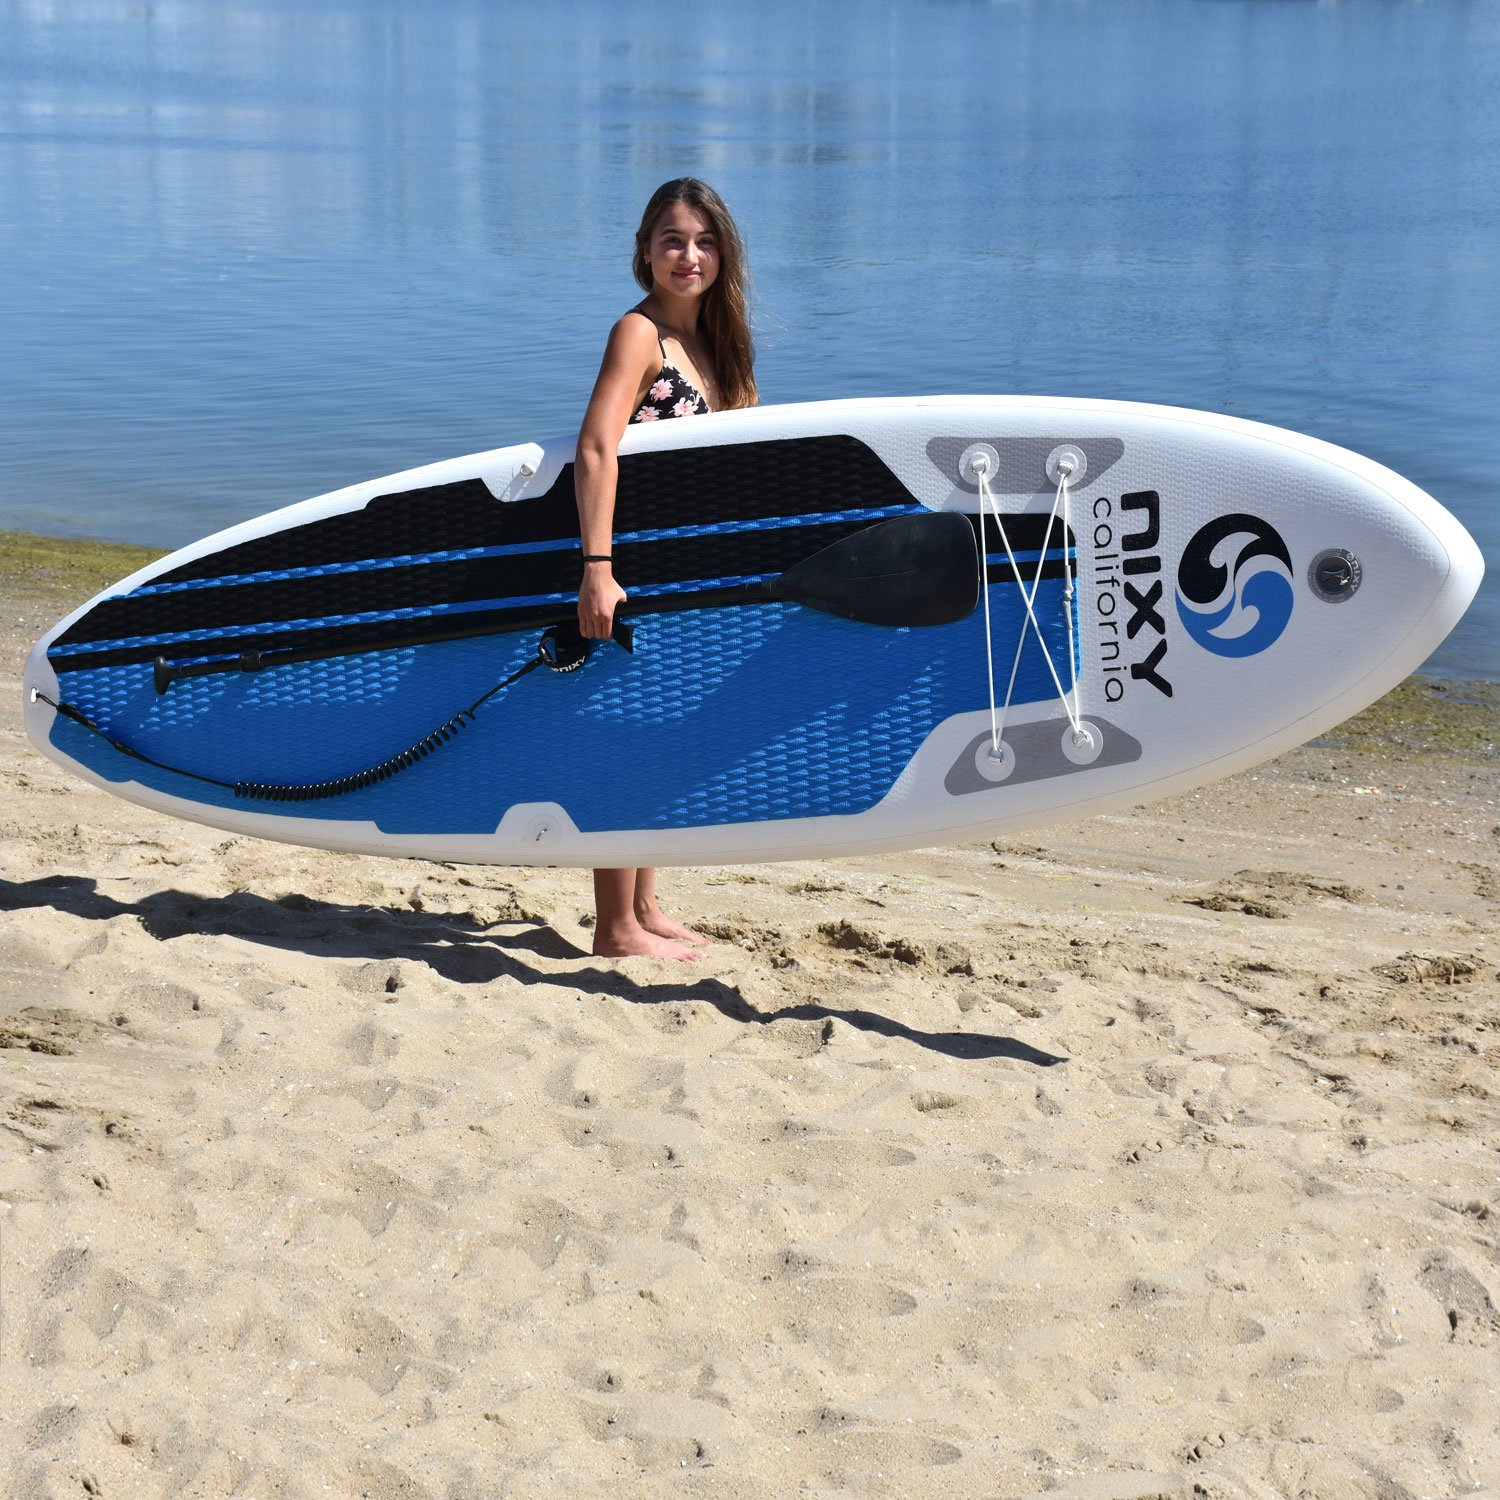 NIXY All Around Inflatable Stand Up Paddle Board Package. Ultra Light 106 Board Built with Advanced Fusion Laminated Dropstitch Technology and 2 YR ...